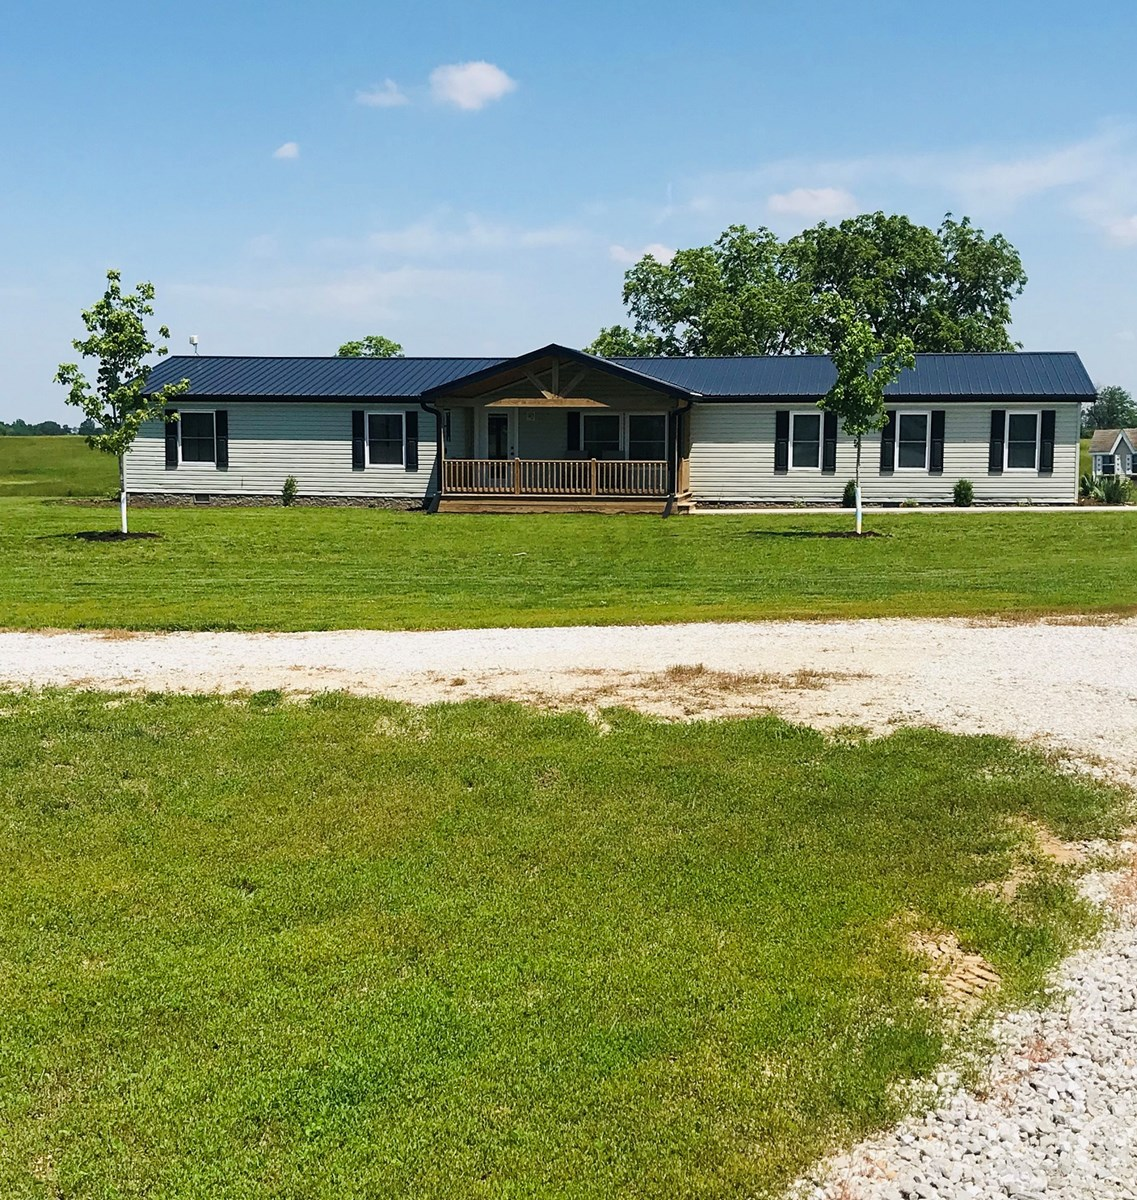 RURAL HOME FOR SALE, HAY GROUND, CRP INCOME FARM, MO HUNTING